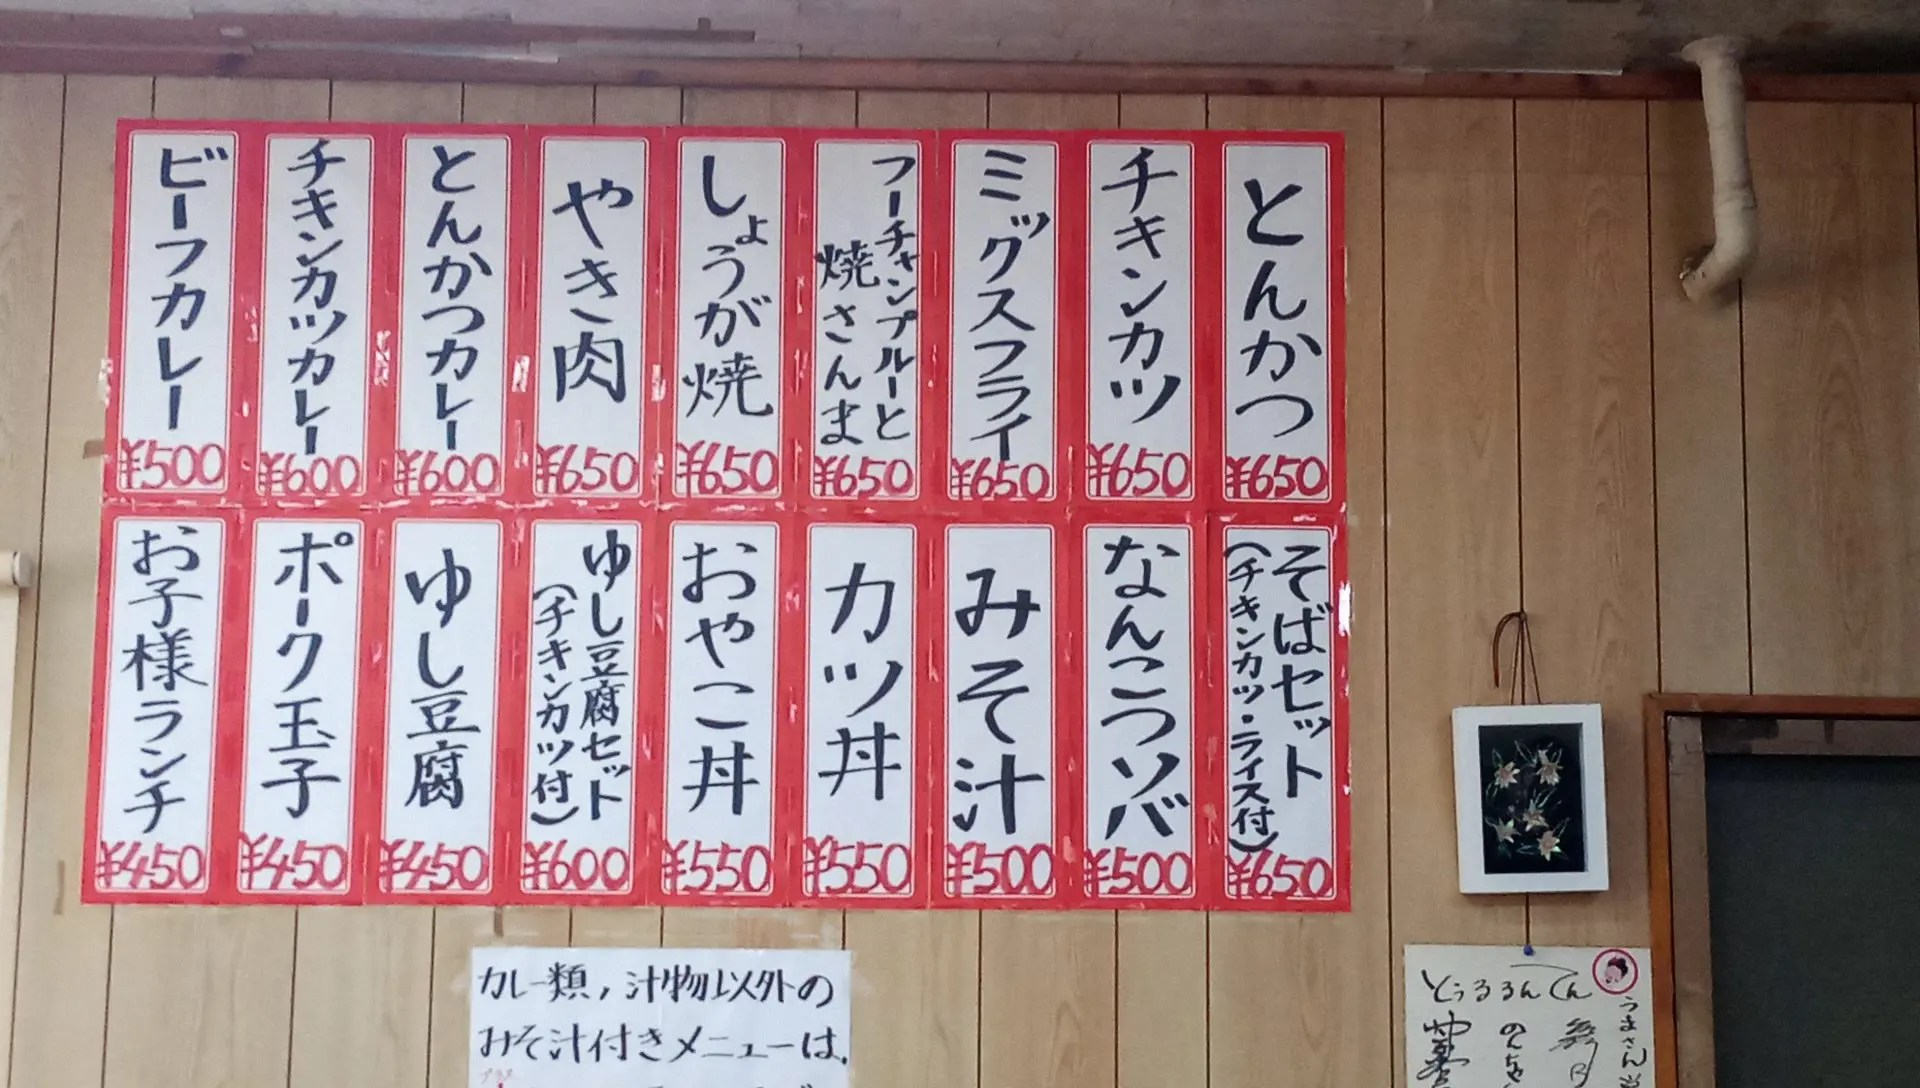 The menu of Umasandou is posted on the wall